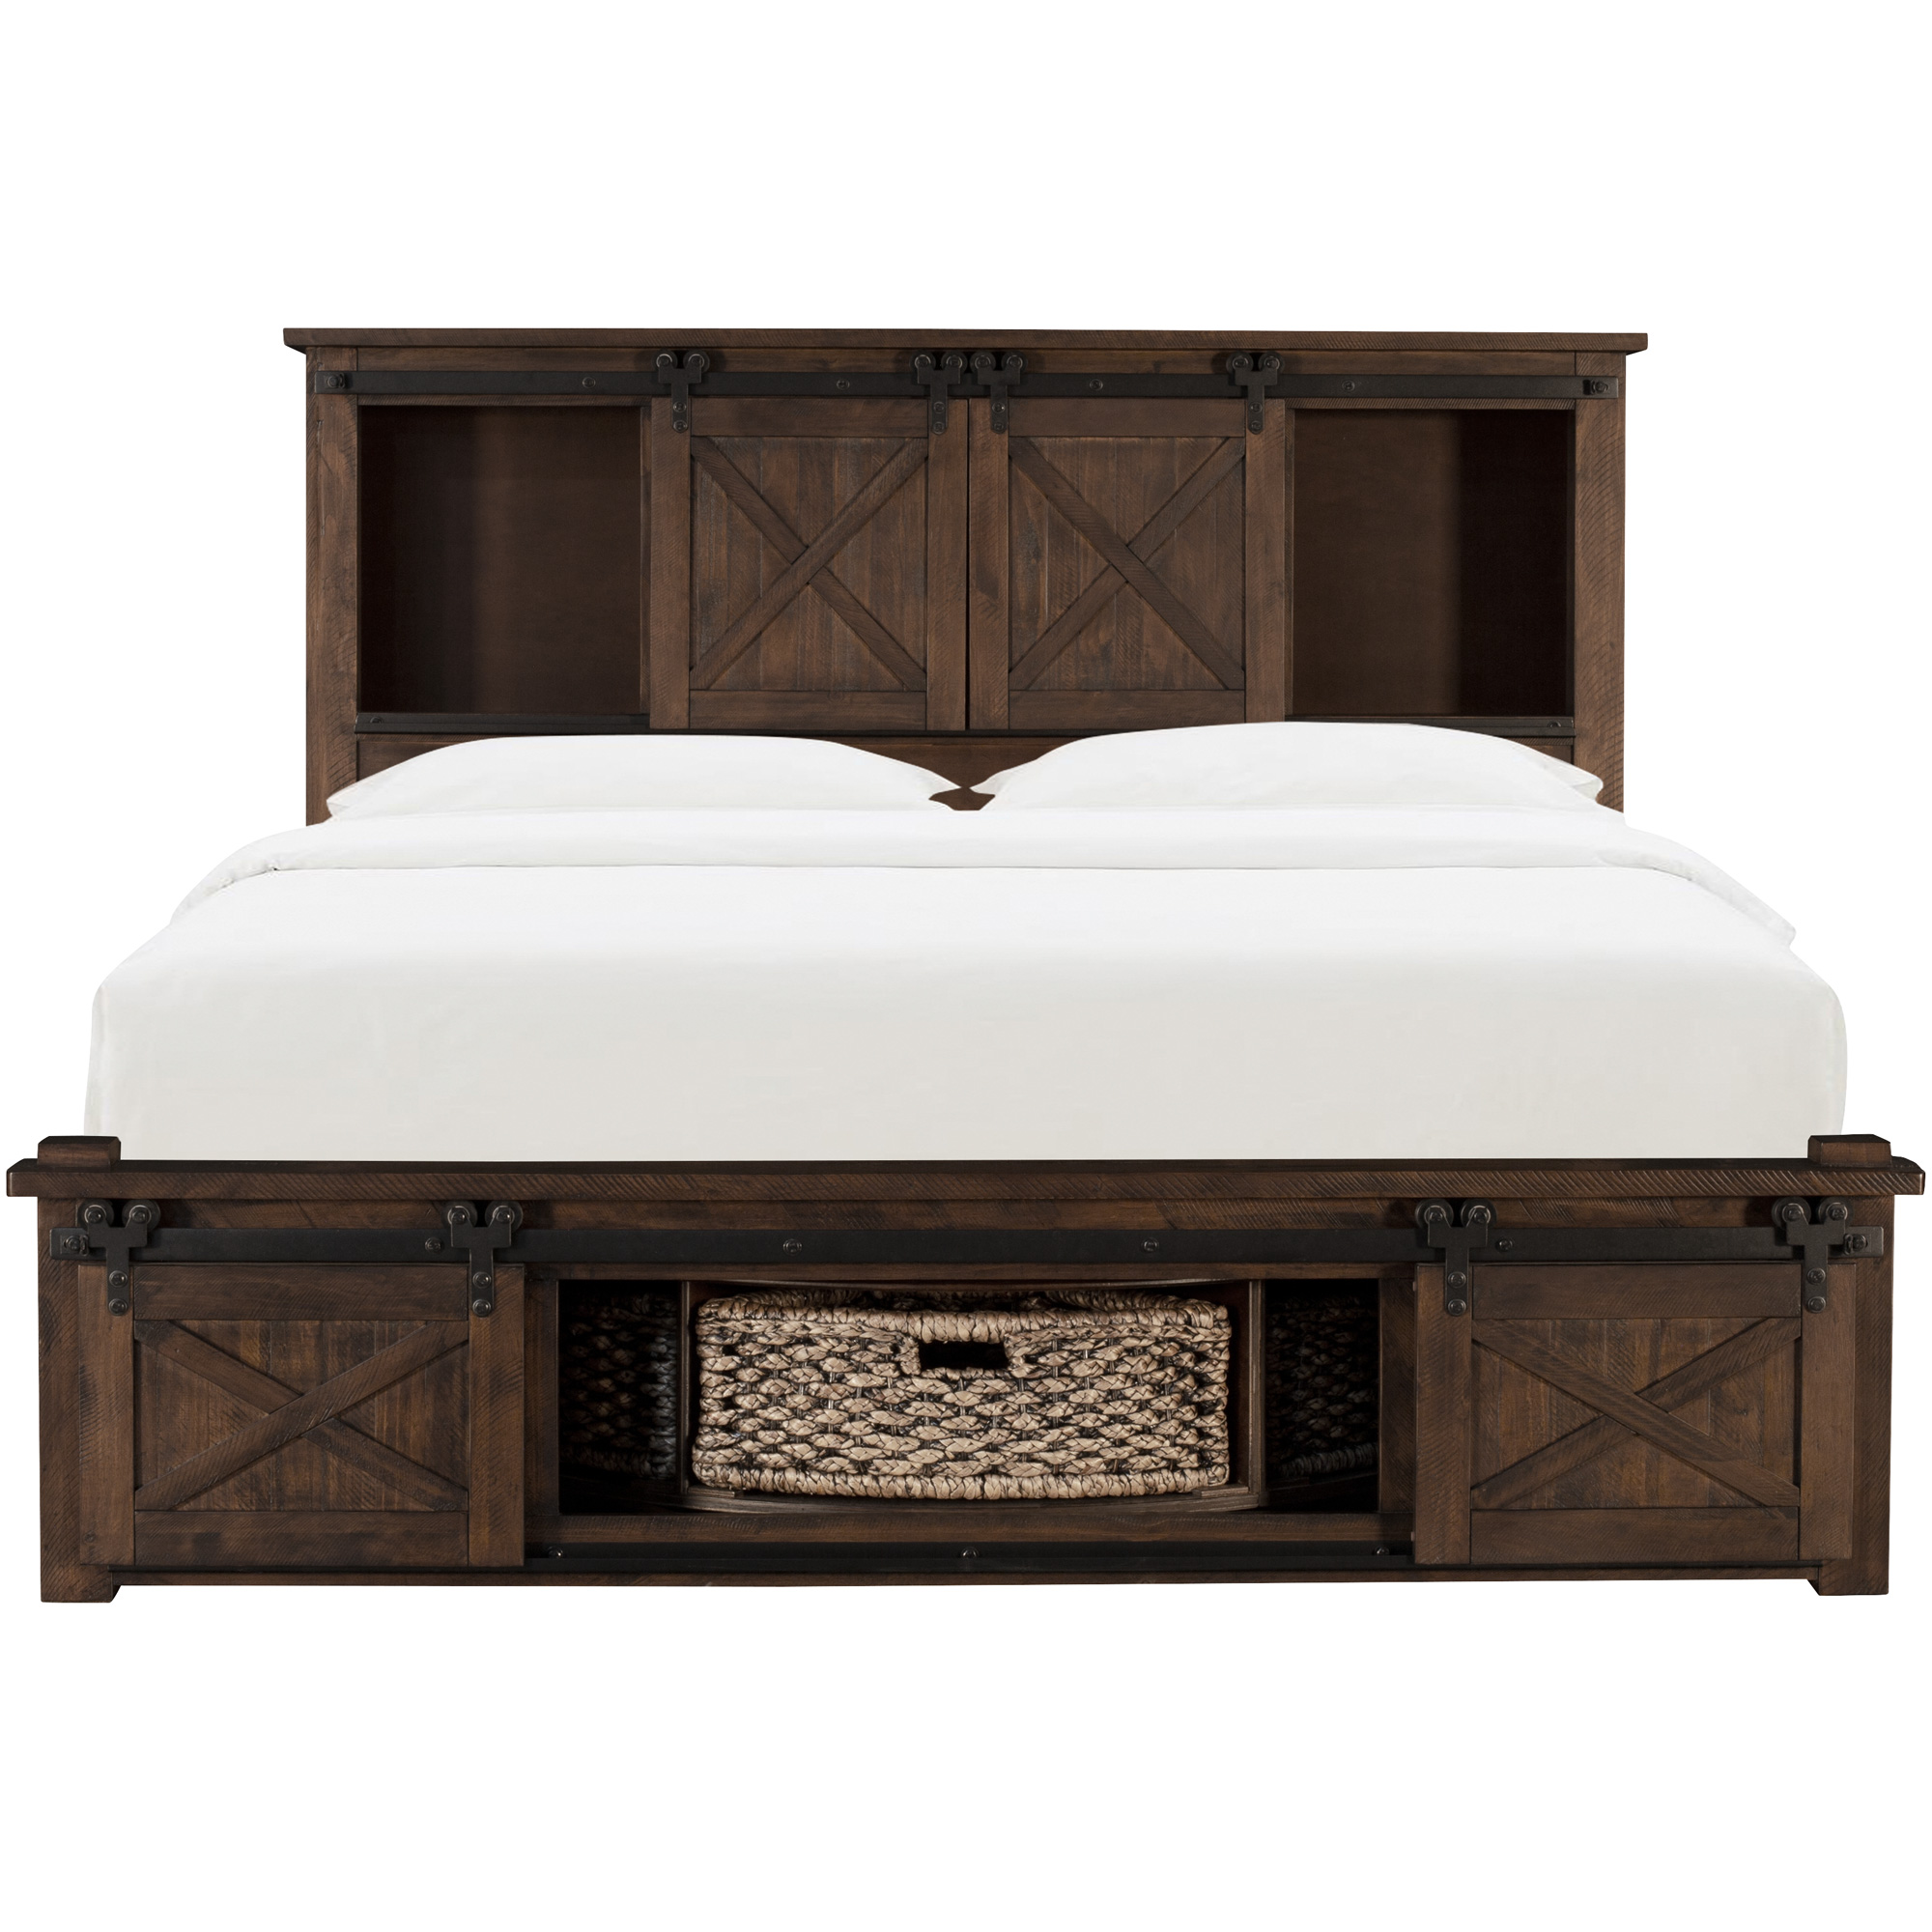 America | Sun Valley Rustic Timber California King Rotating Storage Bed